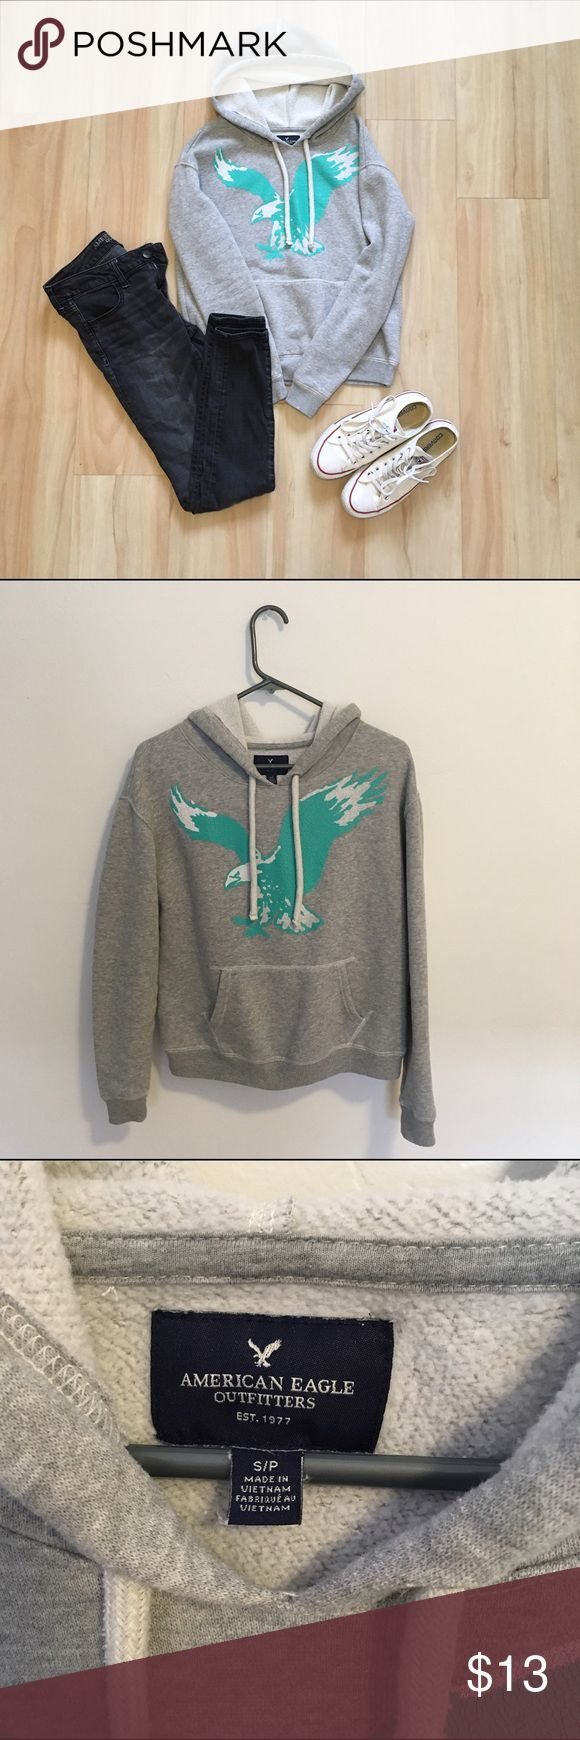 American Eagle Sweatshirt American Eagle sweatshirt  -gently used but still in great condition  -60% cotton, 40% polyester -graphic has minor cracks *pants and converse not included* American Eagle Outfitters Tops Sweatshirts & Hoodies